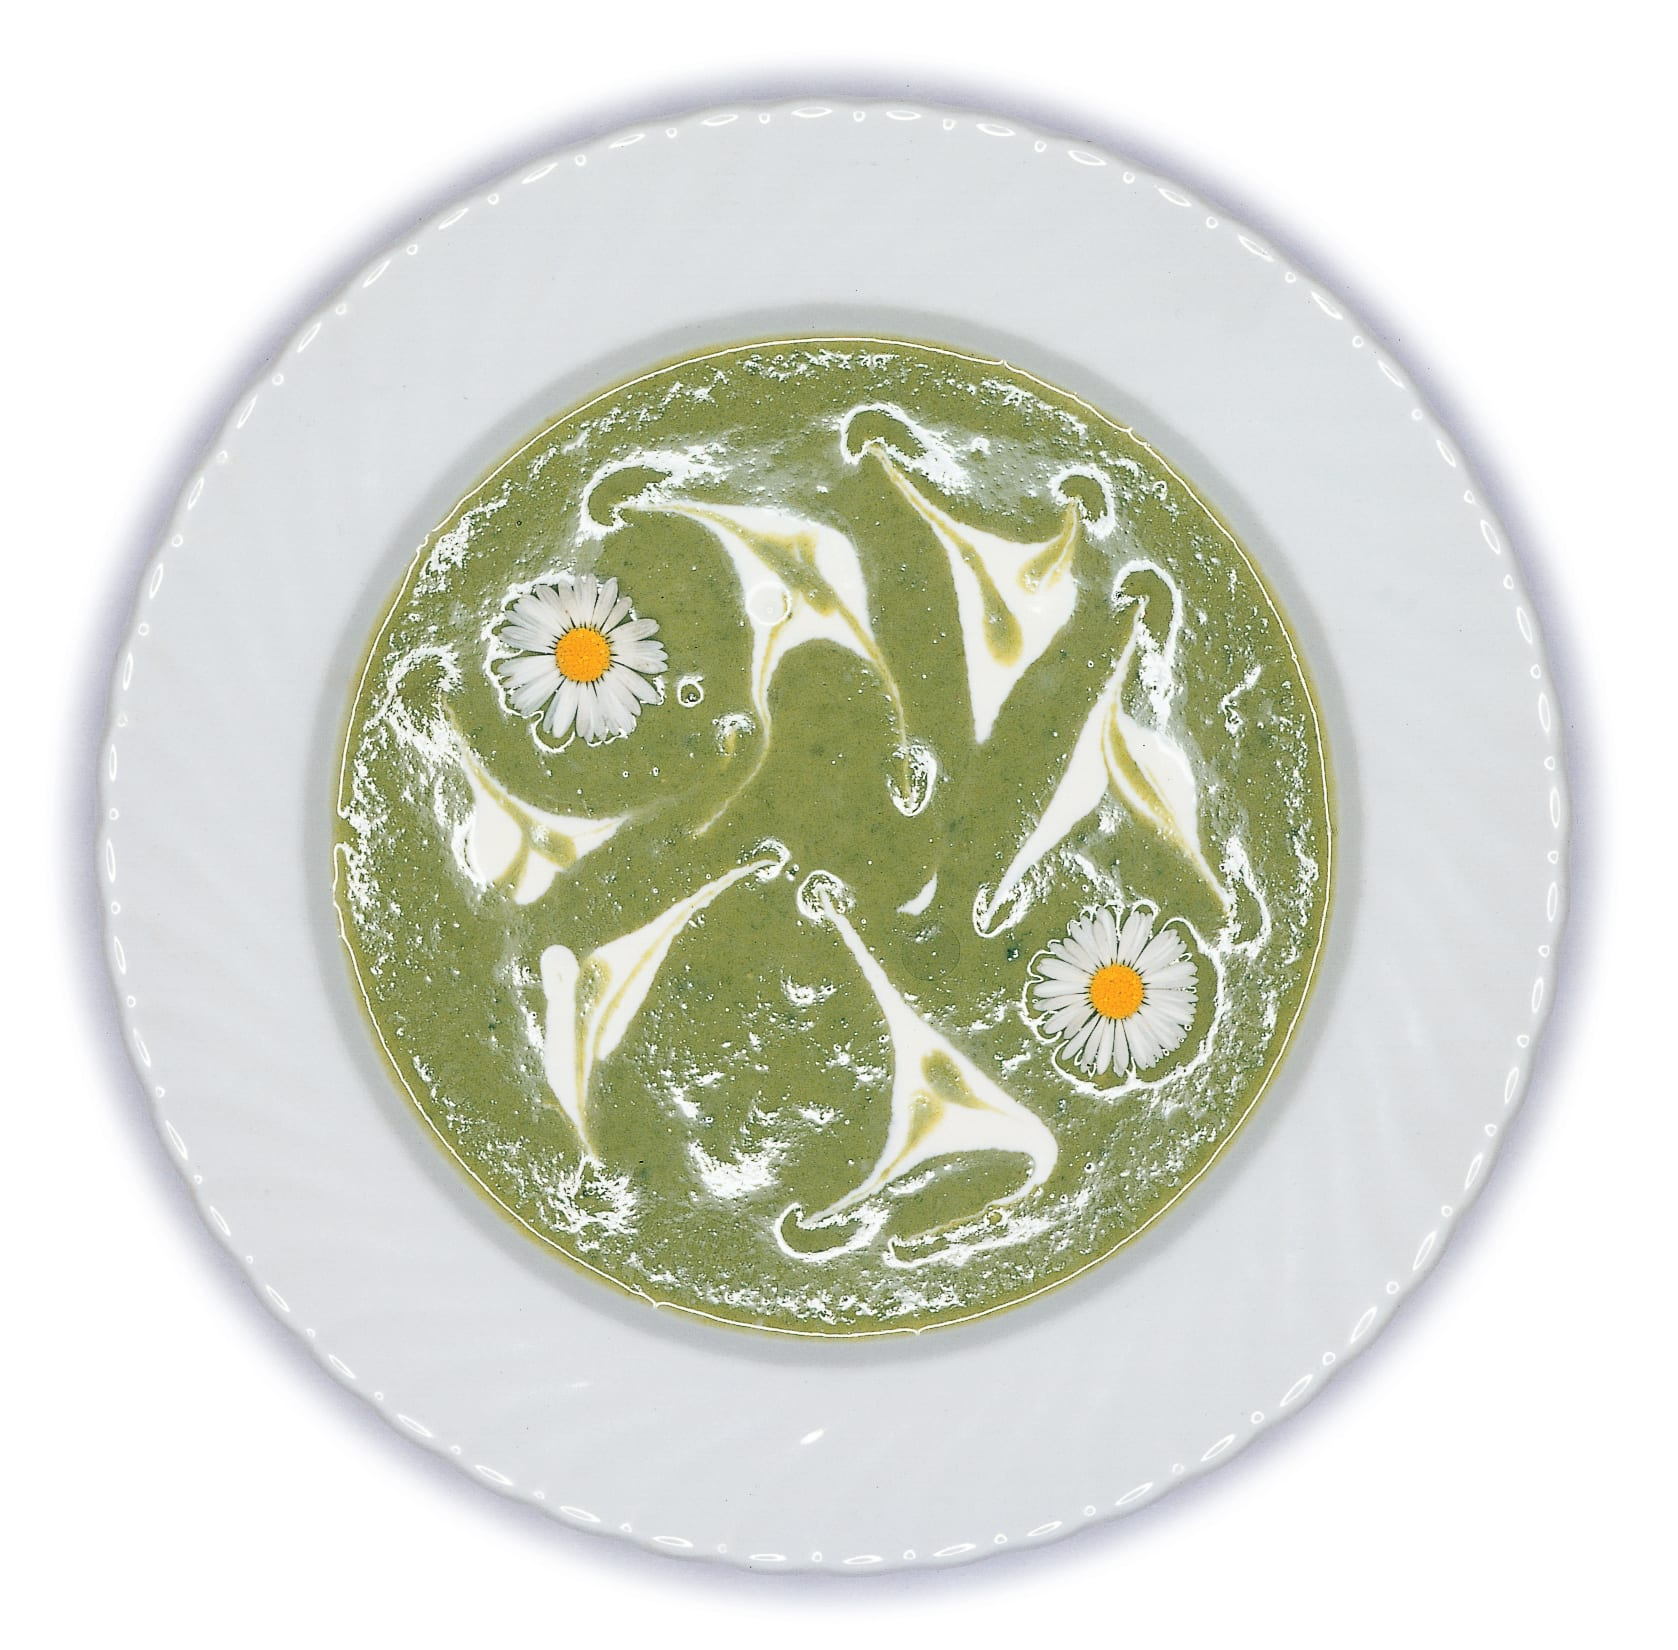 Spinat-Buttermilch-Suppe